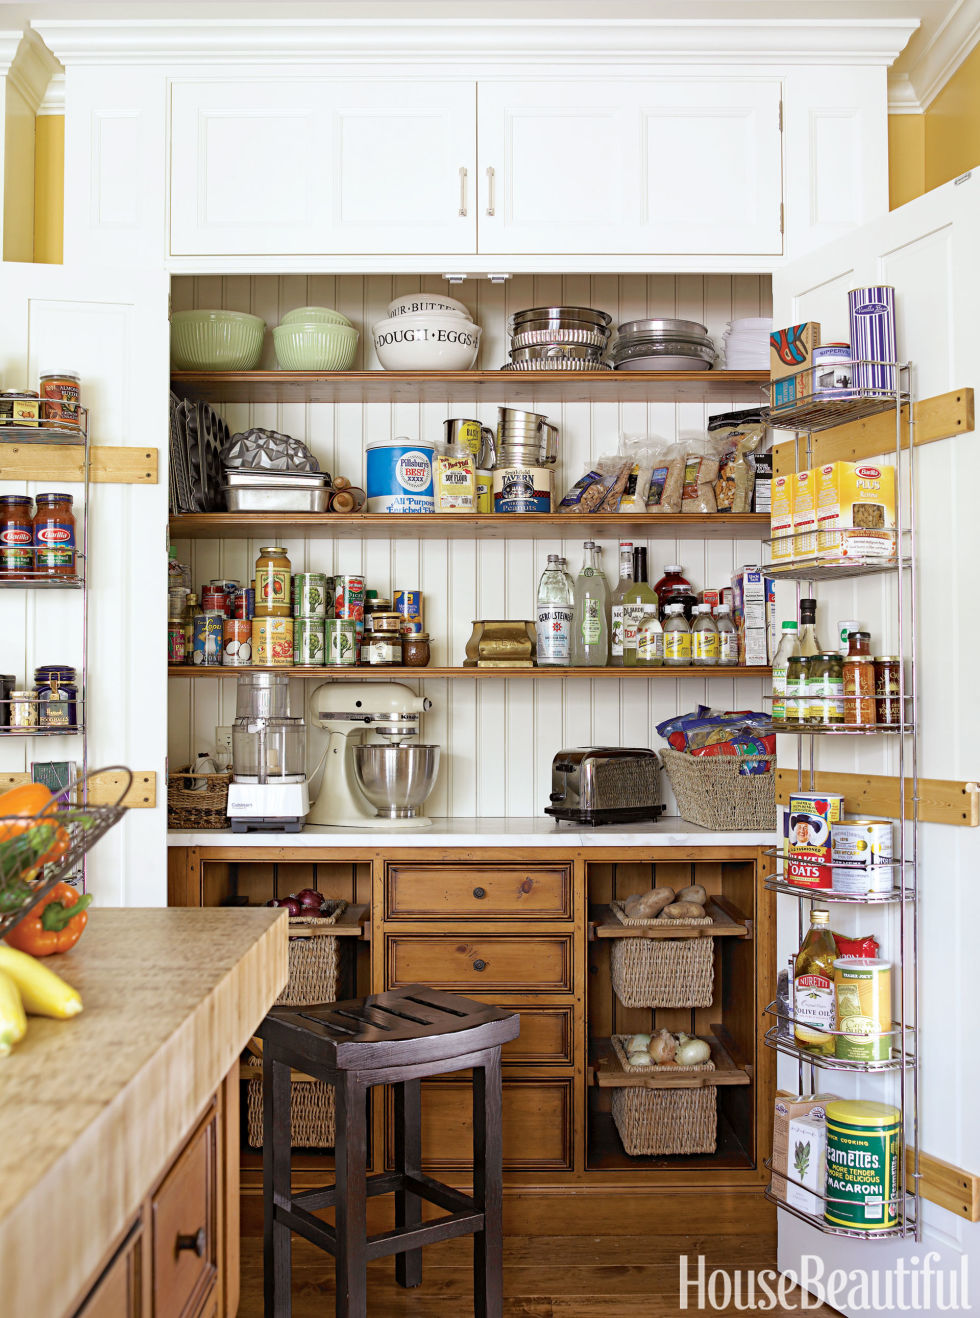 20 Unique Kitchen Storage Ideas Easy Storage Solutions for Kitchens – Clever Kitchen Storage